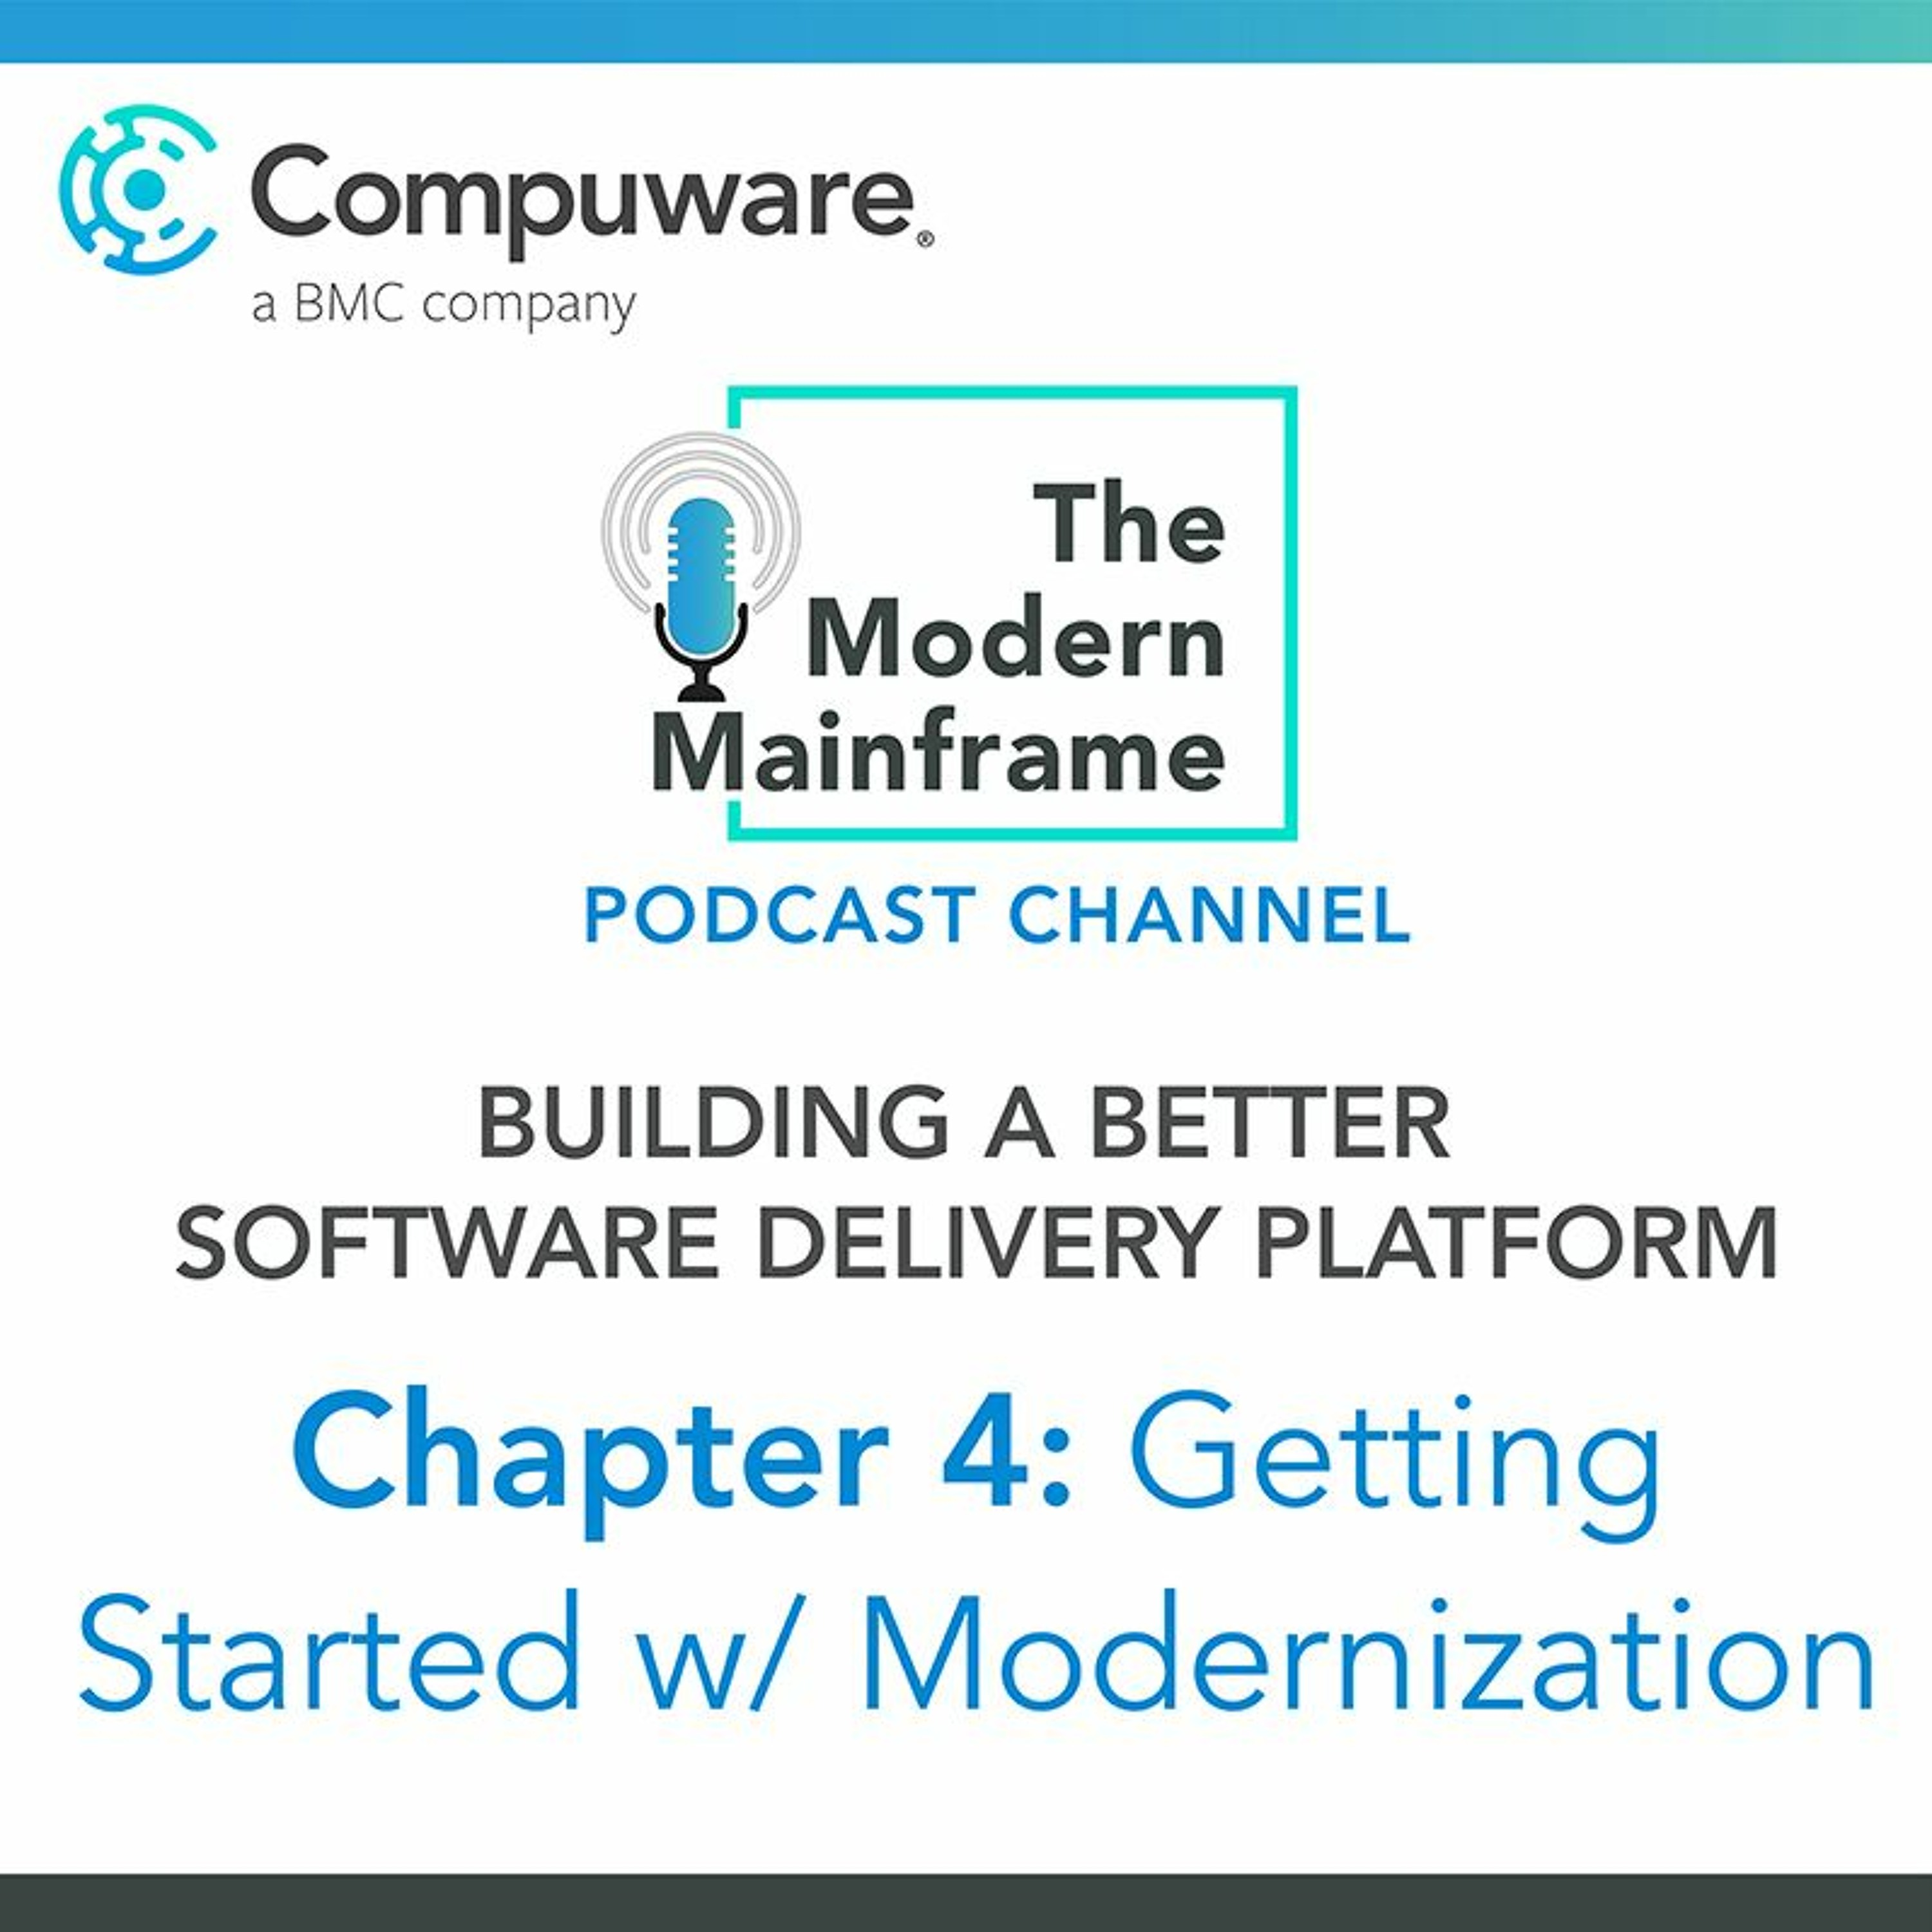 Chapter 4: Getting Started With Your Software Delivery System Modernization Project